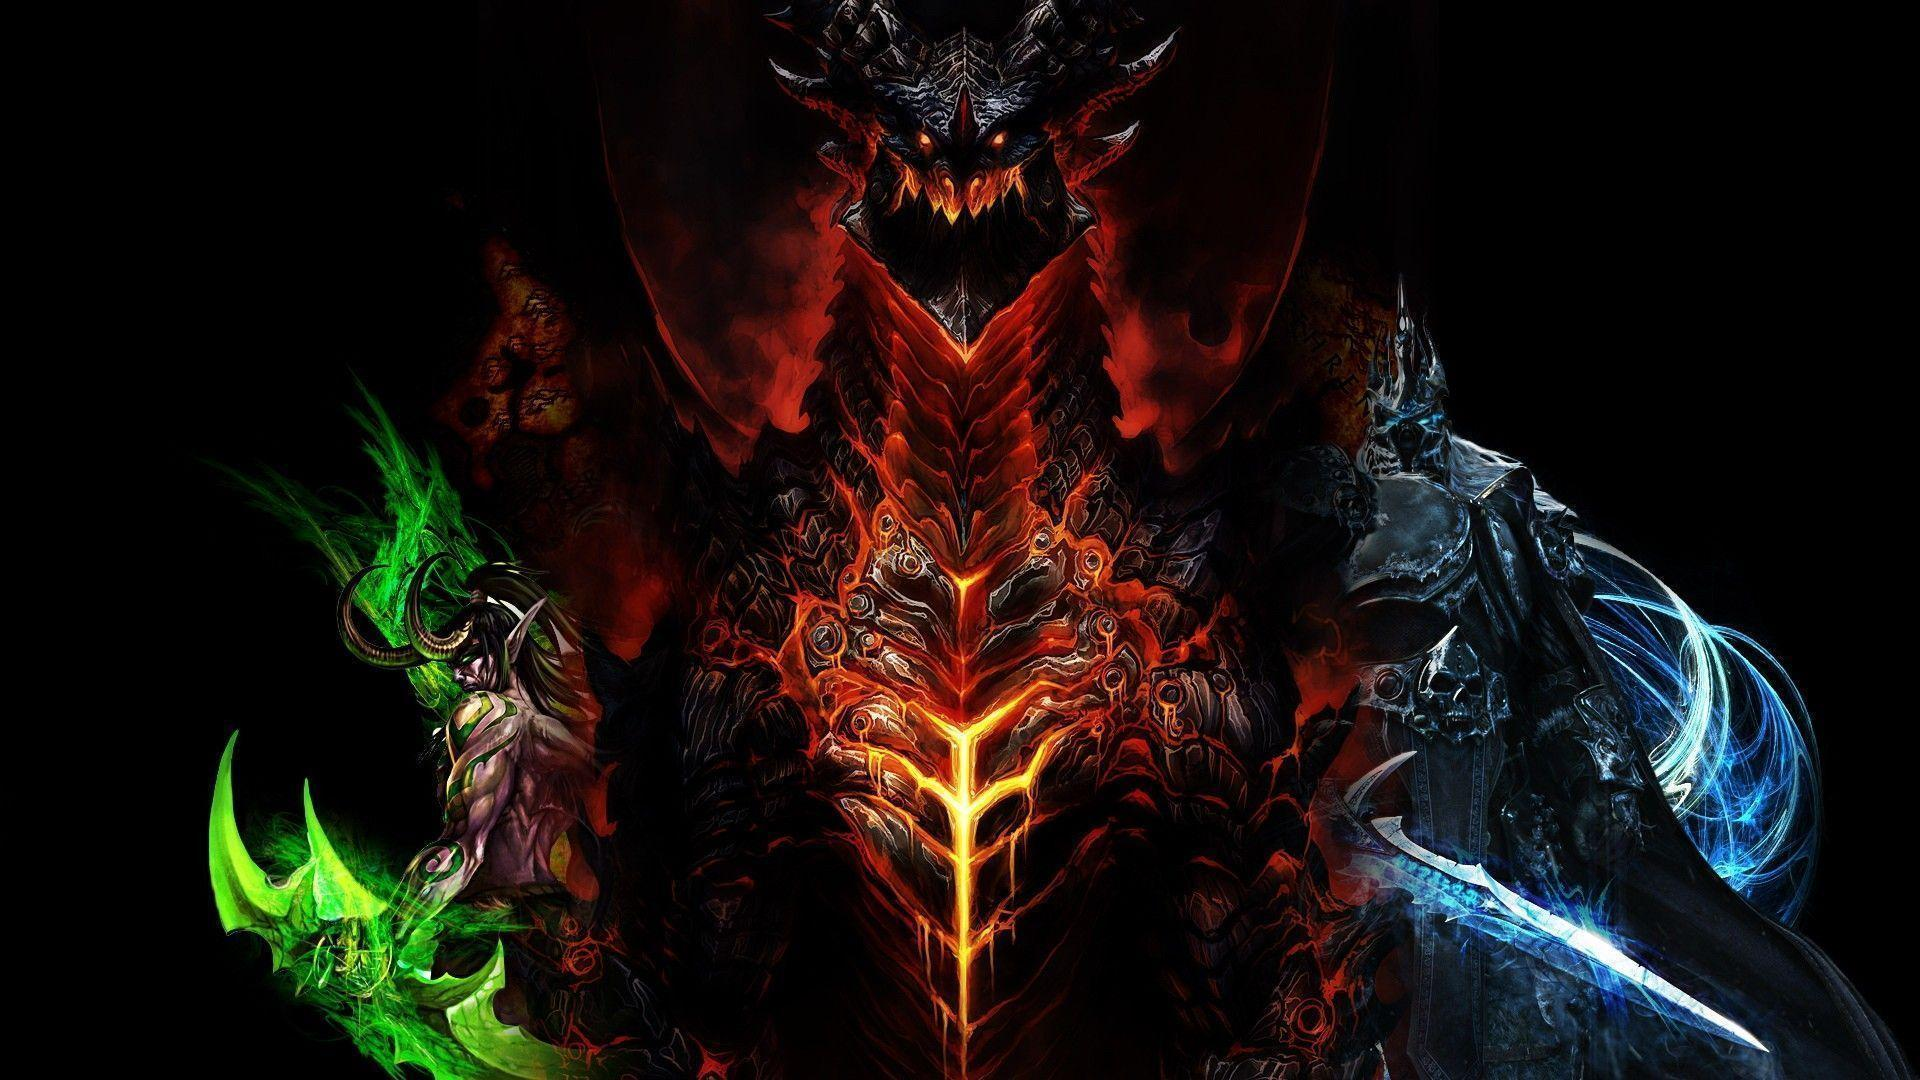 The Lich King Video Games Dragons World Of Warcraft Wallpapers